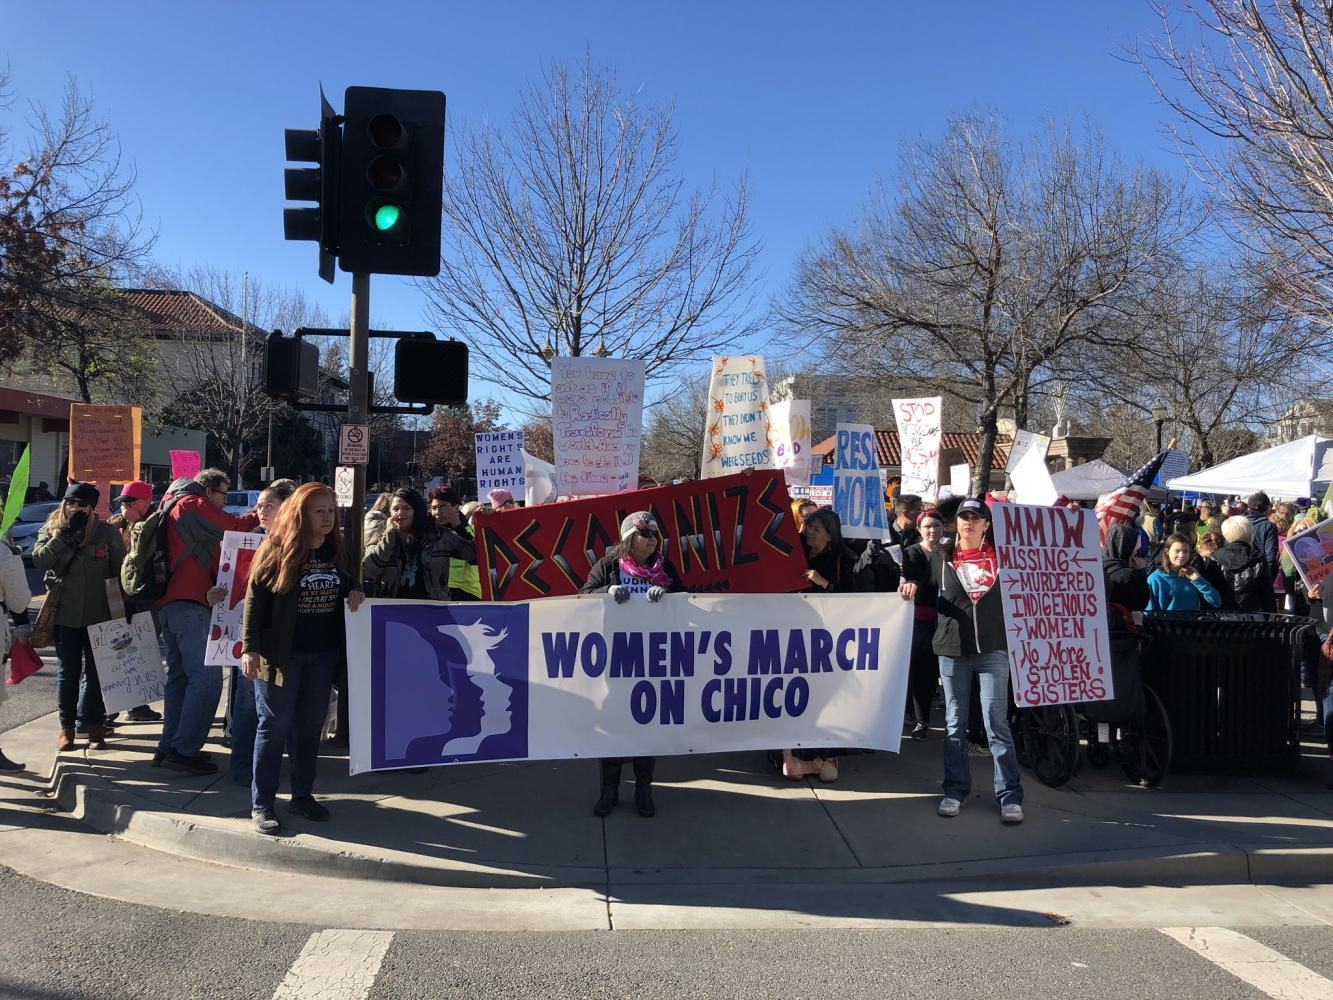 Start of the Women's March on Chico at E. Fifth Street.